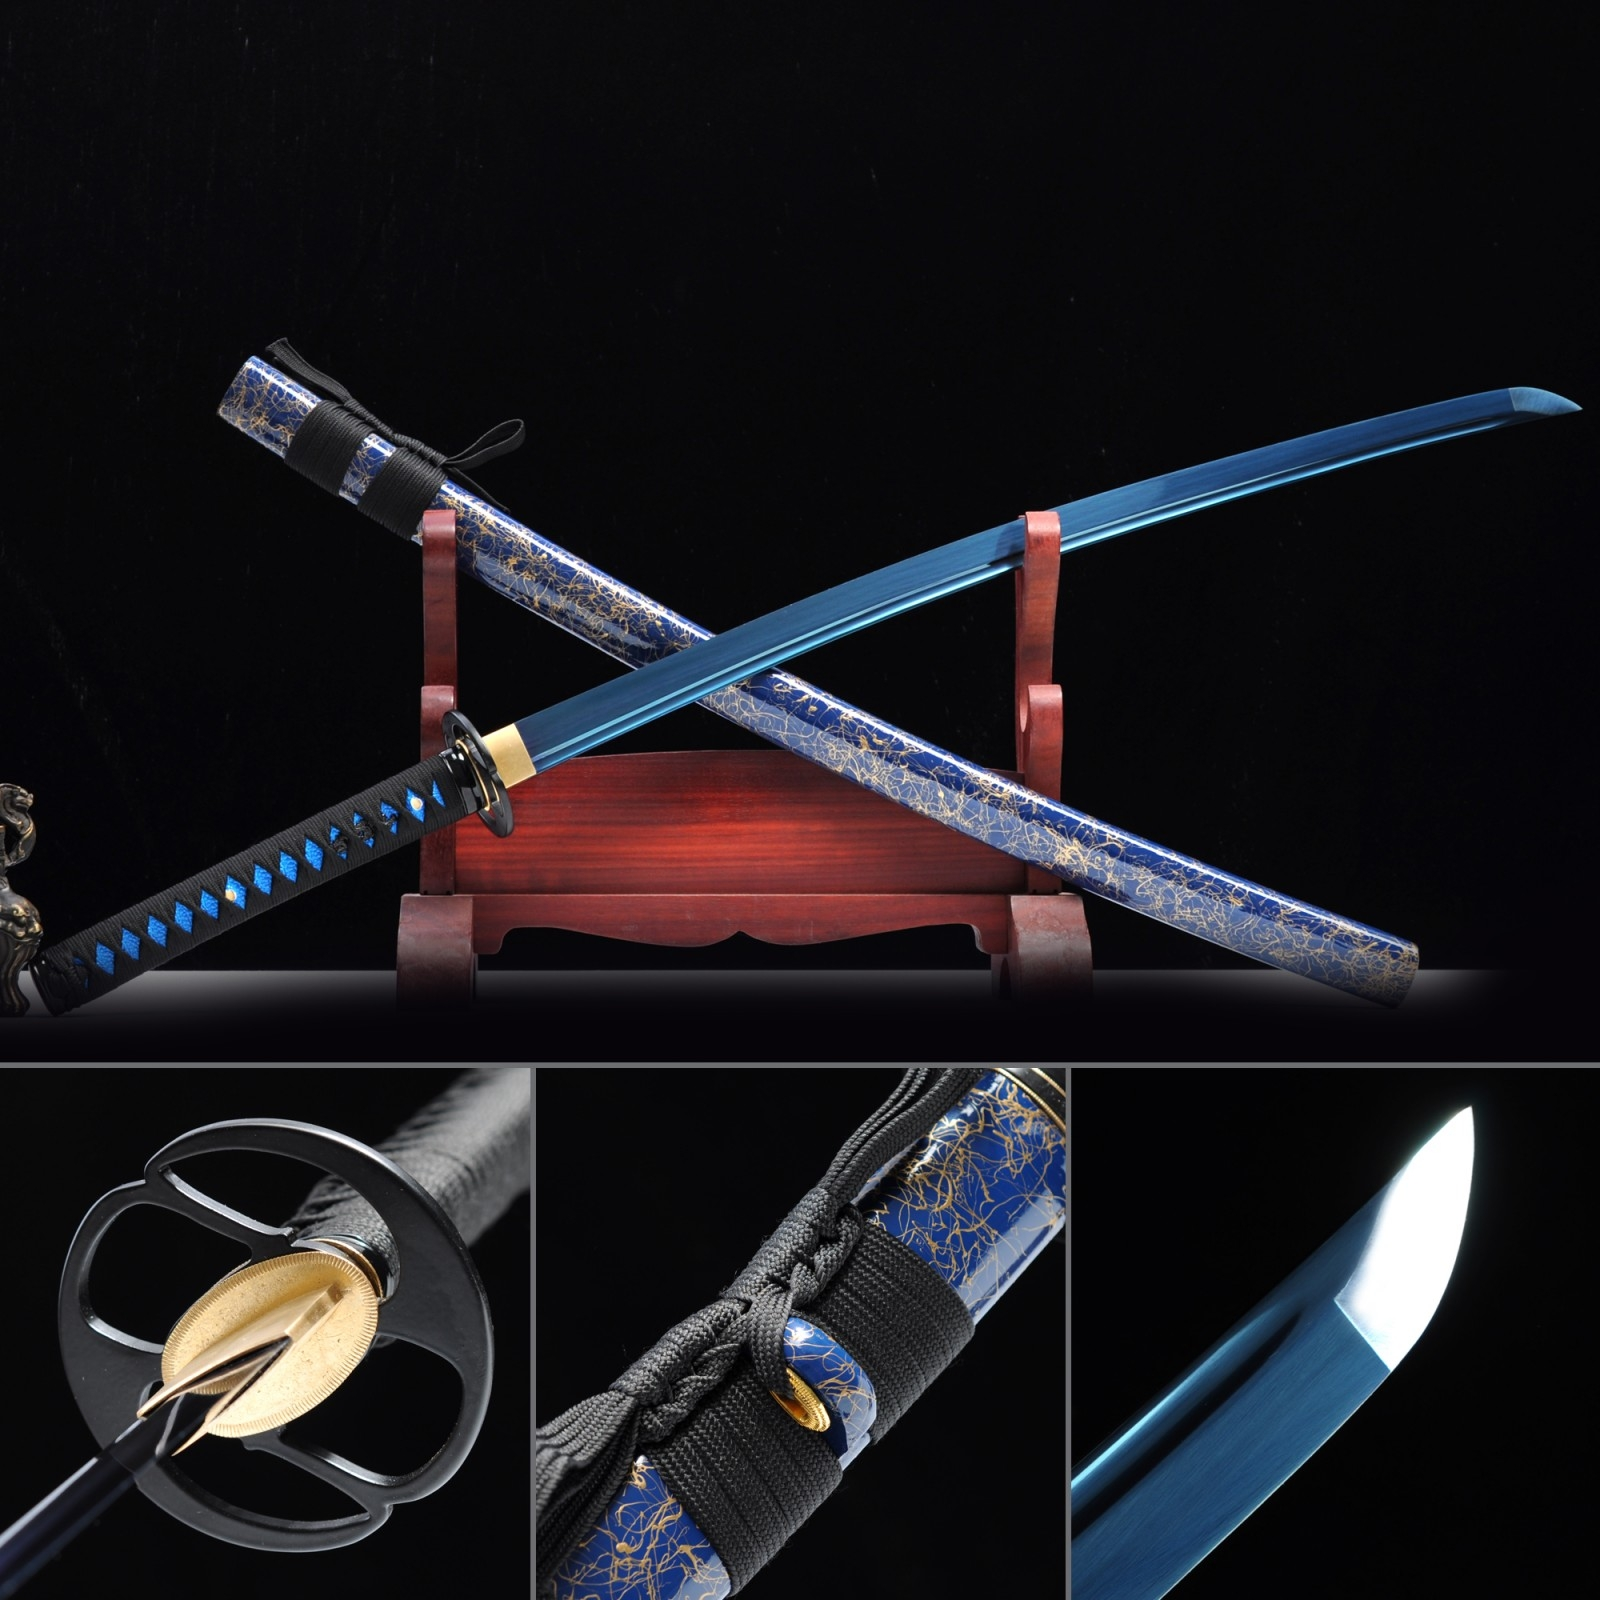 Hand Forged Blue Blade Real Japanese Katana Samurai Swords With Blue Scabbard